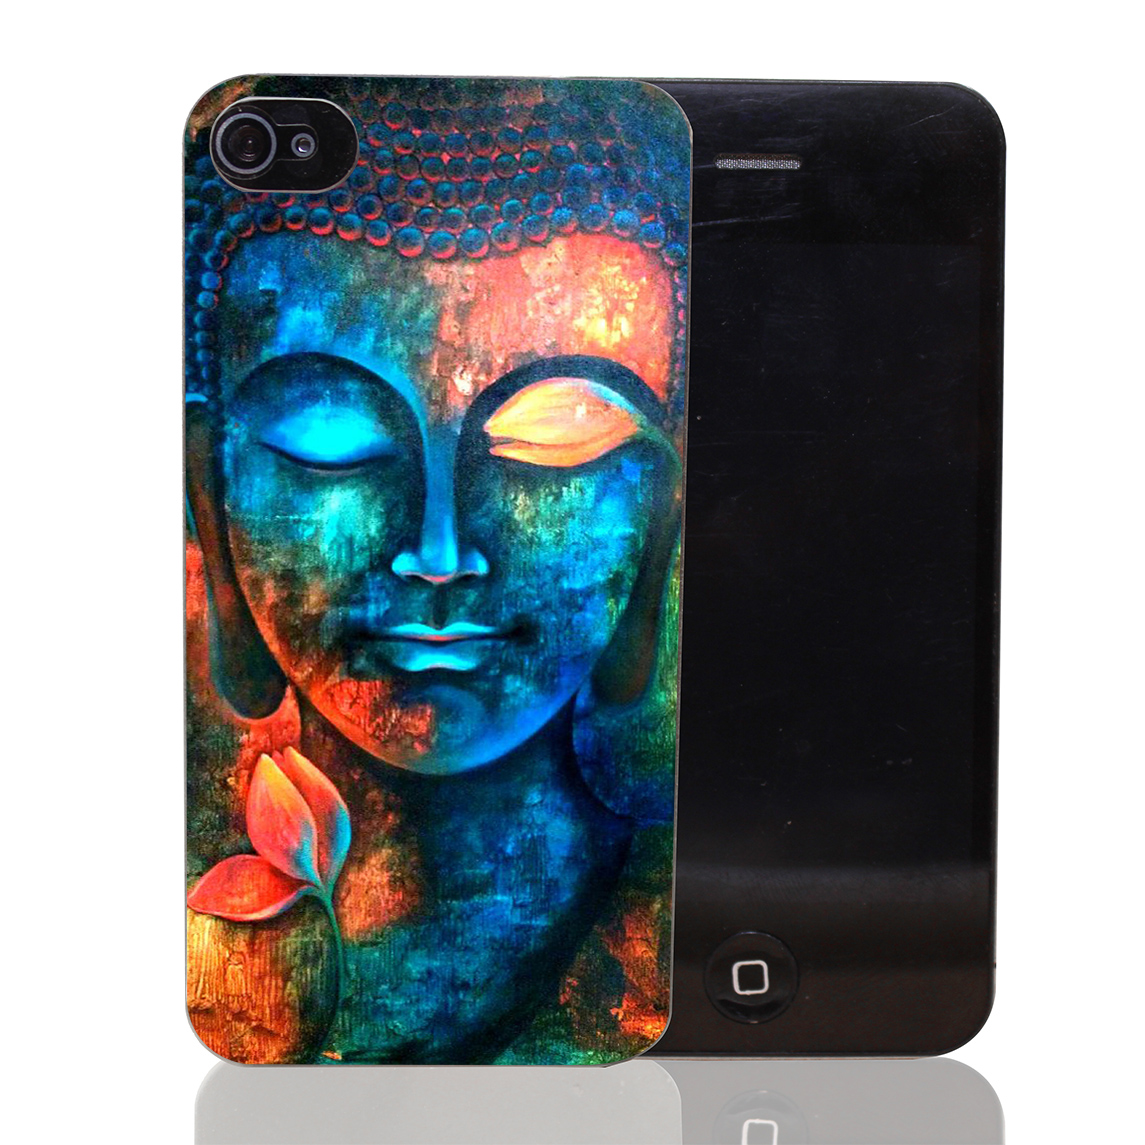 969T Buddha colorful Hard Transparent Clear Case for iPhone 4 4s 5 5s SE 5c 6 6s 7 & Plus